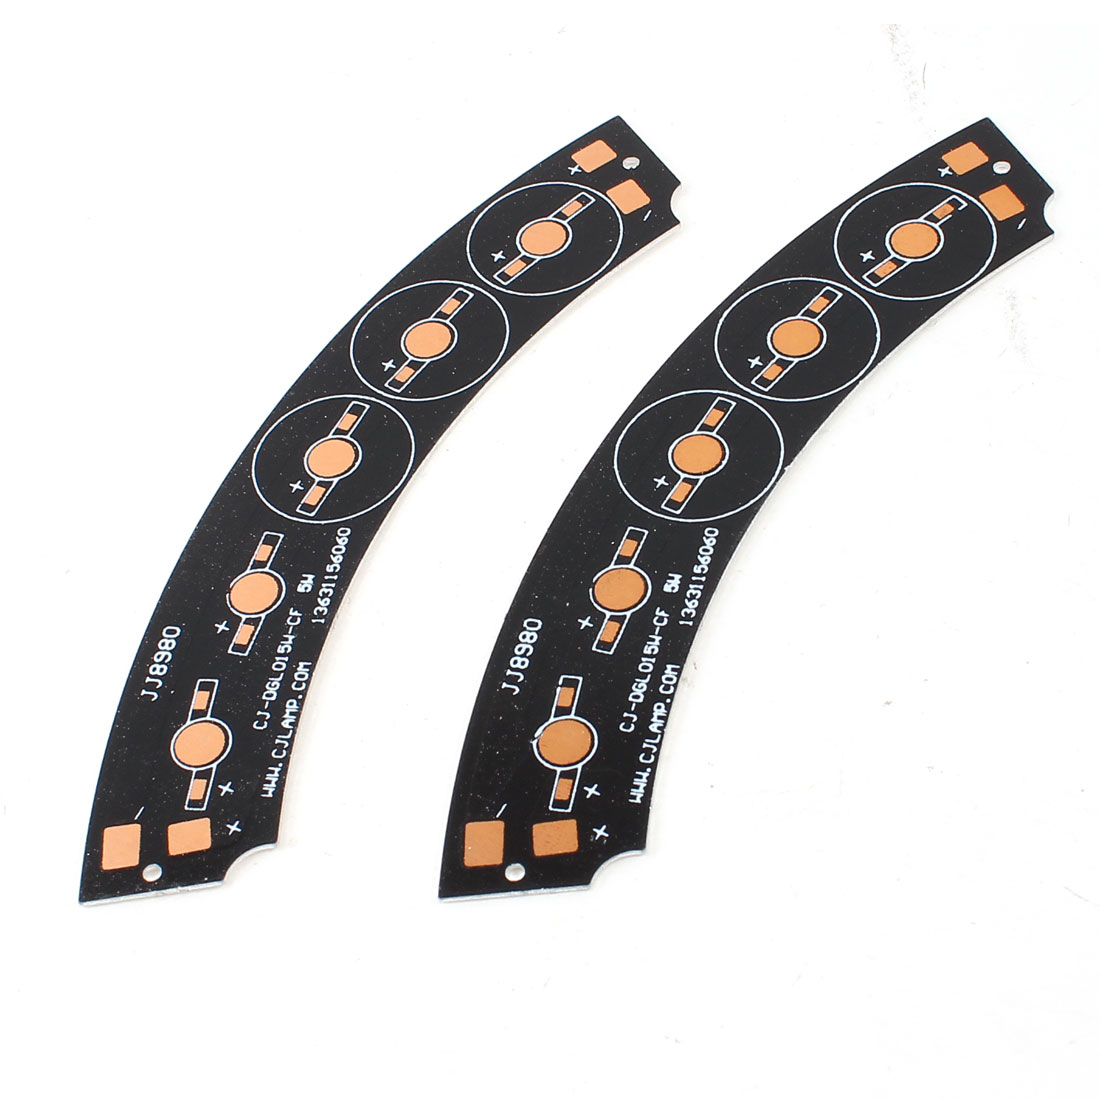 2Pcs Aluminum PCB Circuit Board 145mmx25mm for 5 x 1W/3W/5W LEDs Series